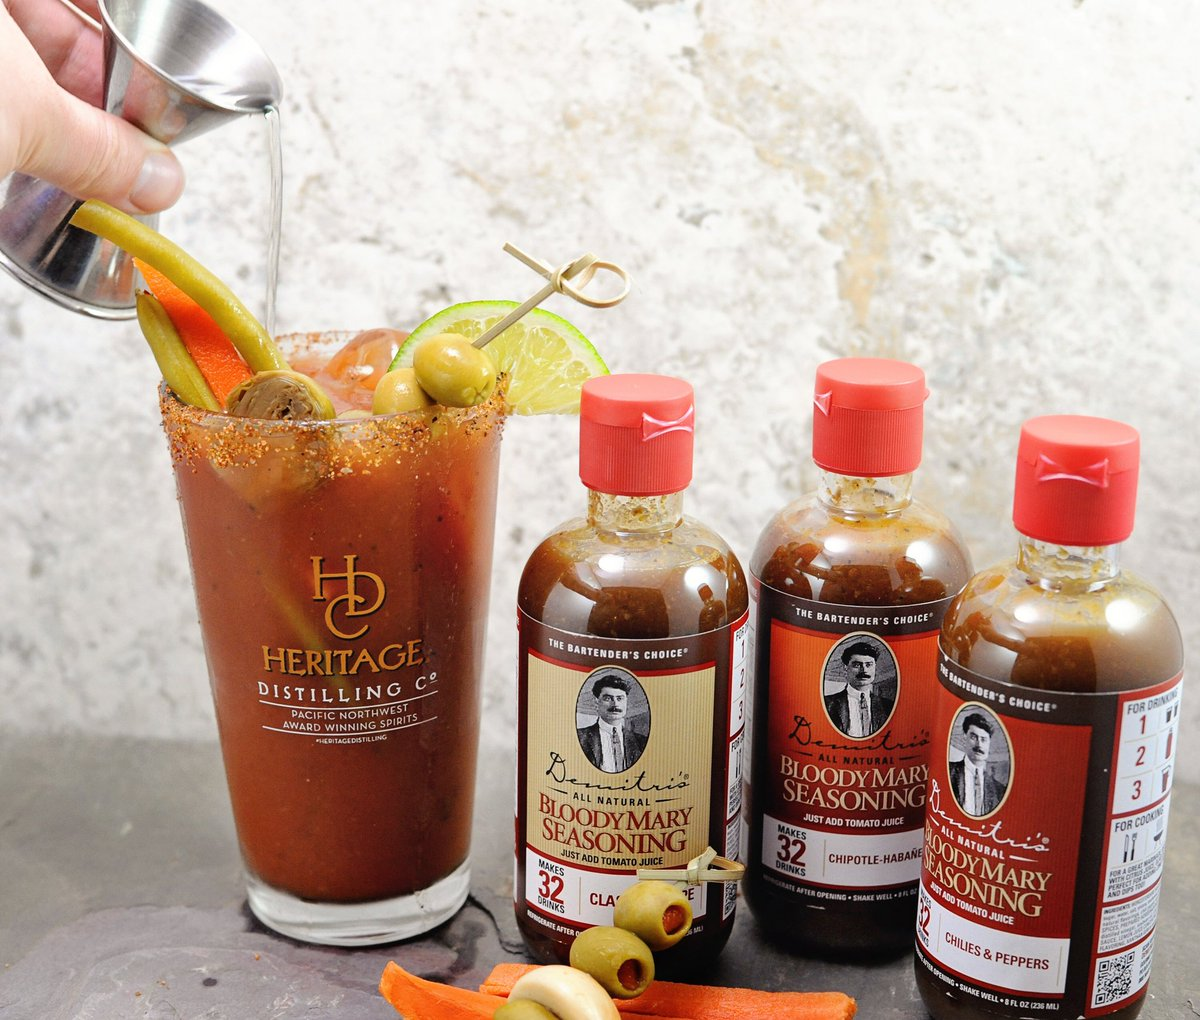 test Twitter Media - Which #HeritageDistilling spirit do you pour in to your Bloody Mary? #NationalBloodyMaryDay #SeasonedVodka #BaconVodka #SweetGhostPepperVodka @BloodyMaryMan https://t.co/AWQGr25eSB